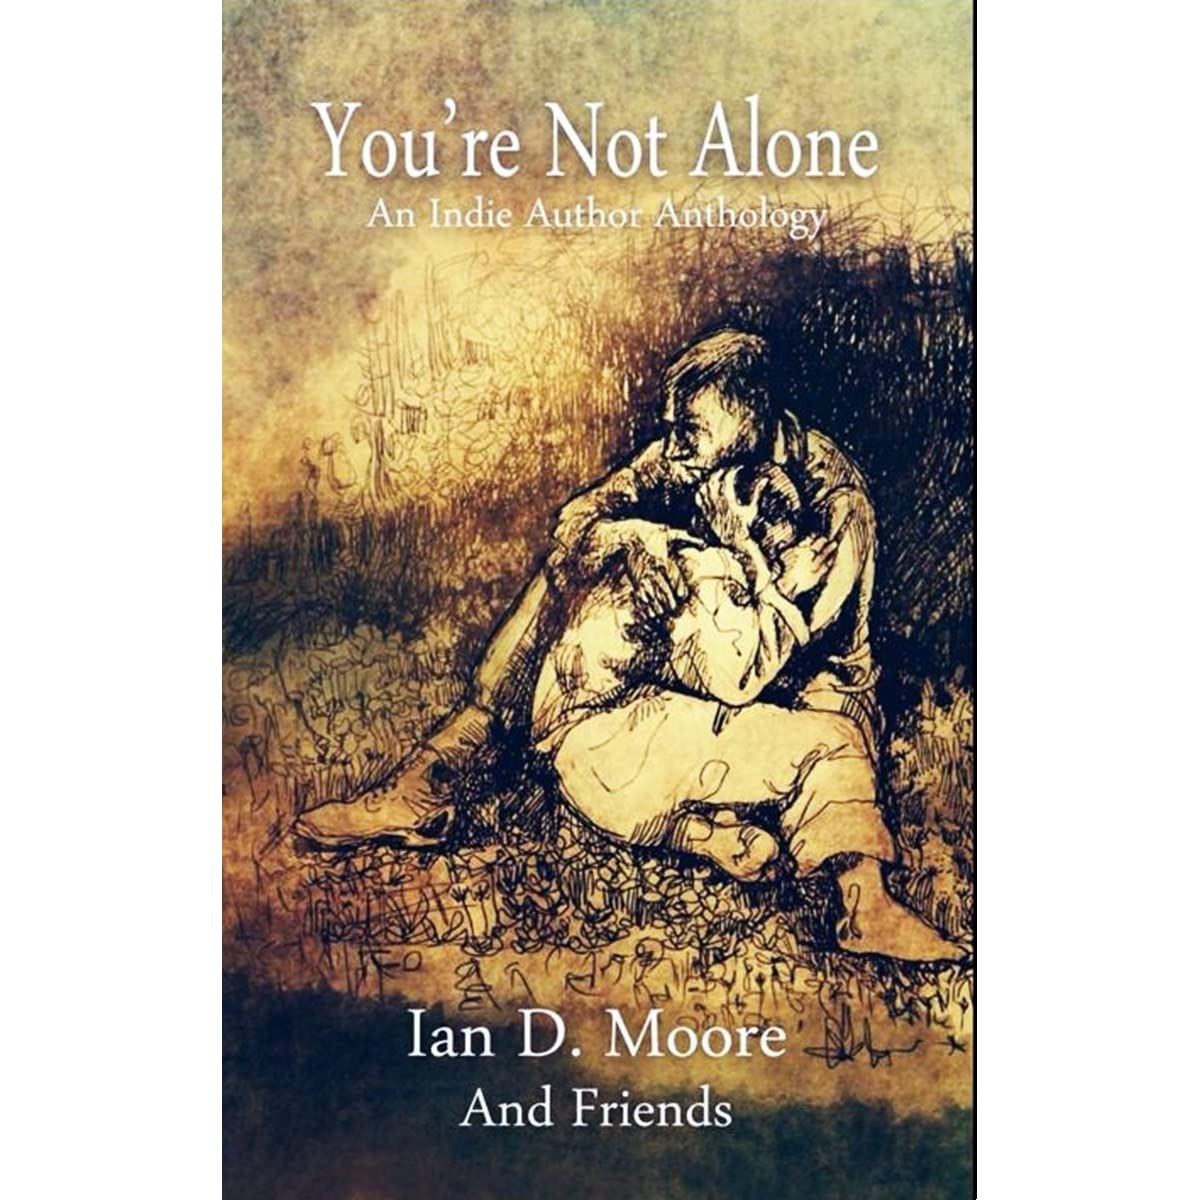 You Re Not In This Alone What Columbine: You're Not Alone: An Indie Author Anthology By Ian D